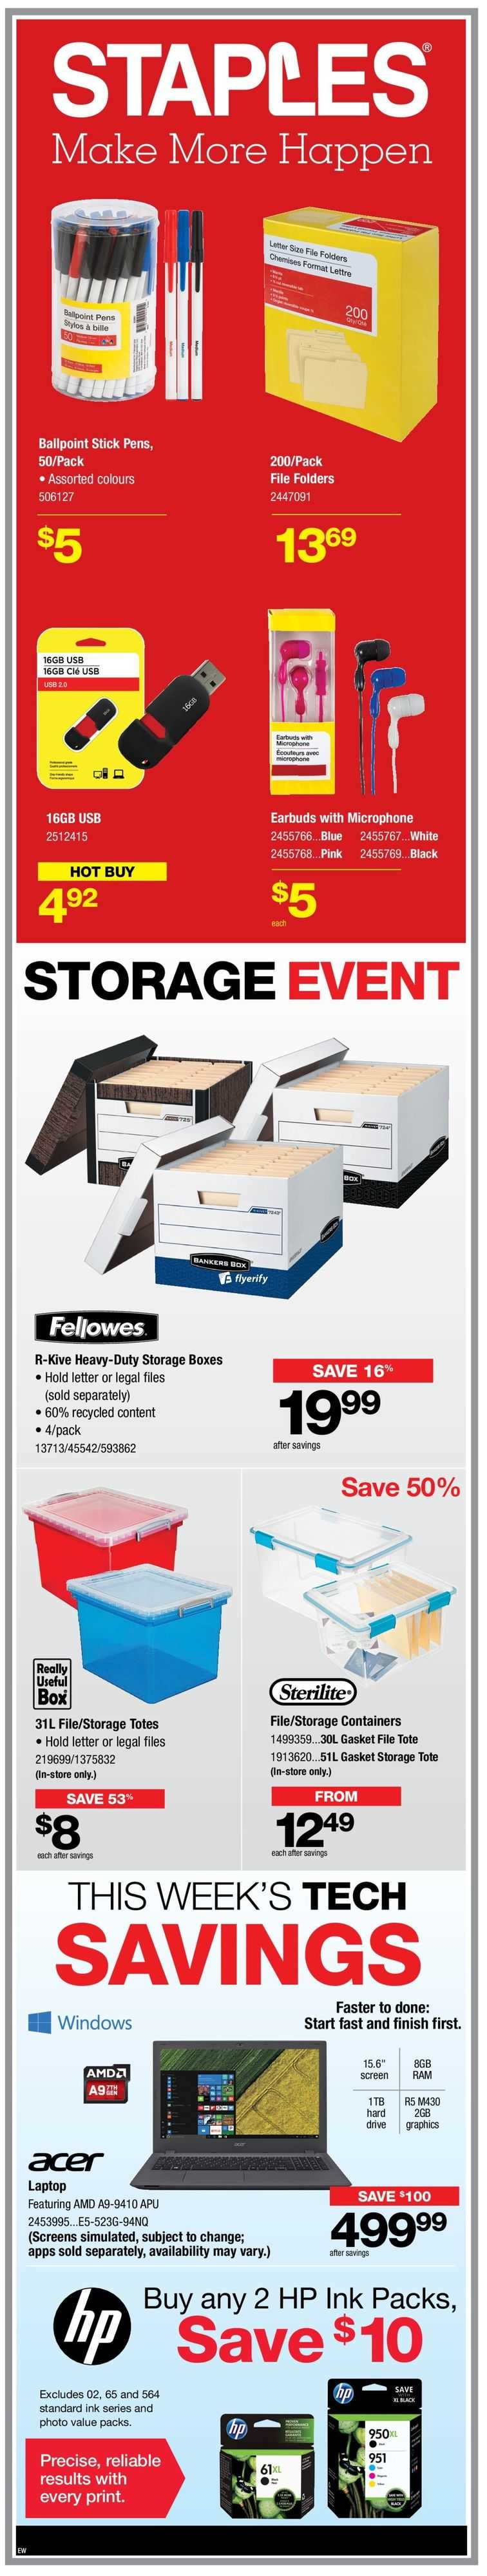 Home Hardware Flyer Building Centre - Come Home For Christmas Valid Wed December 5 – Tue Dec 11, Browse all the catalofues Home Hardware building centre weekly flyer! You will find on cover flyer event 2 day Home hot buy December 7&8, save 50% Holiday wrapping Paper was $ now, the price is only $ pack.